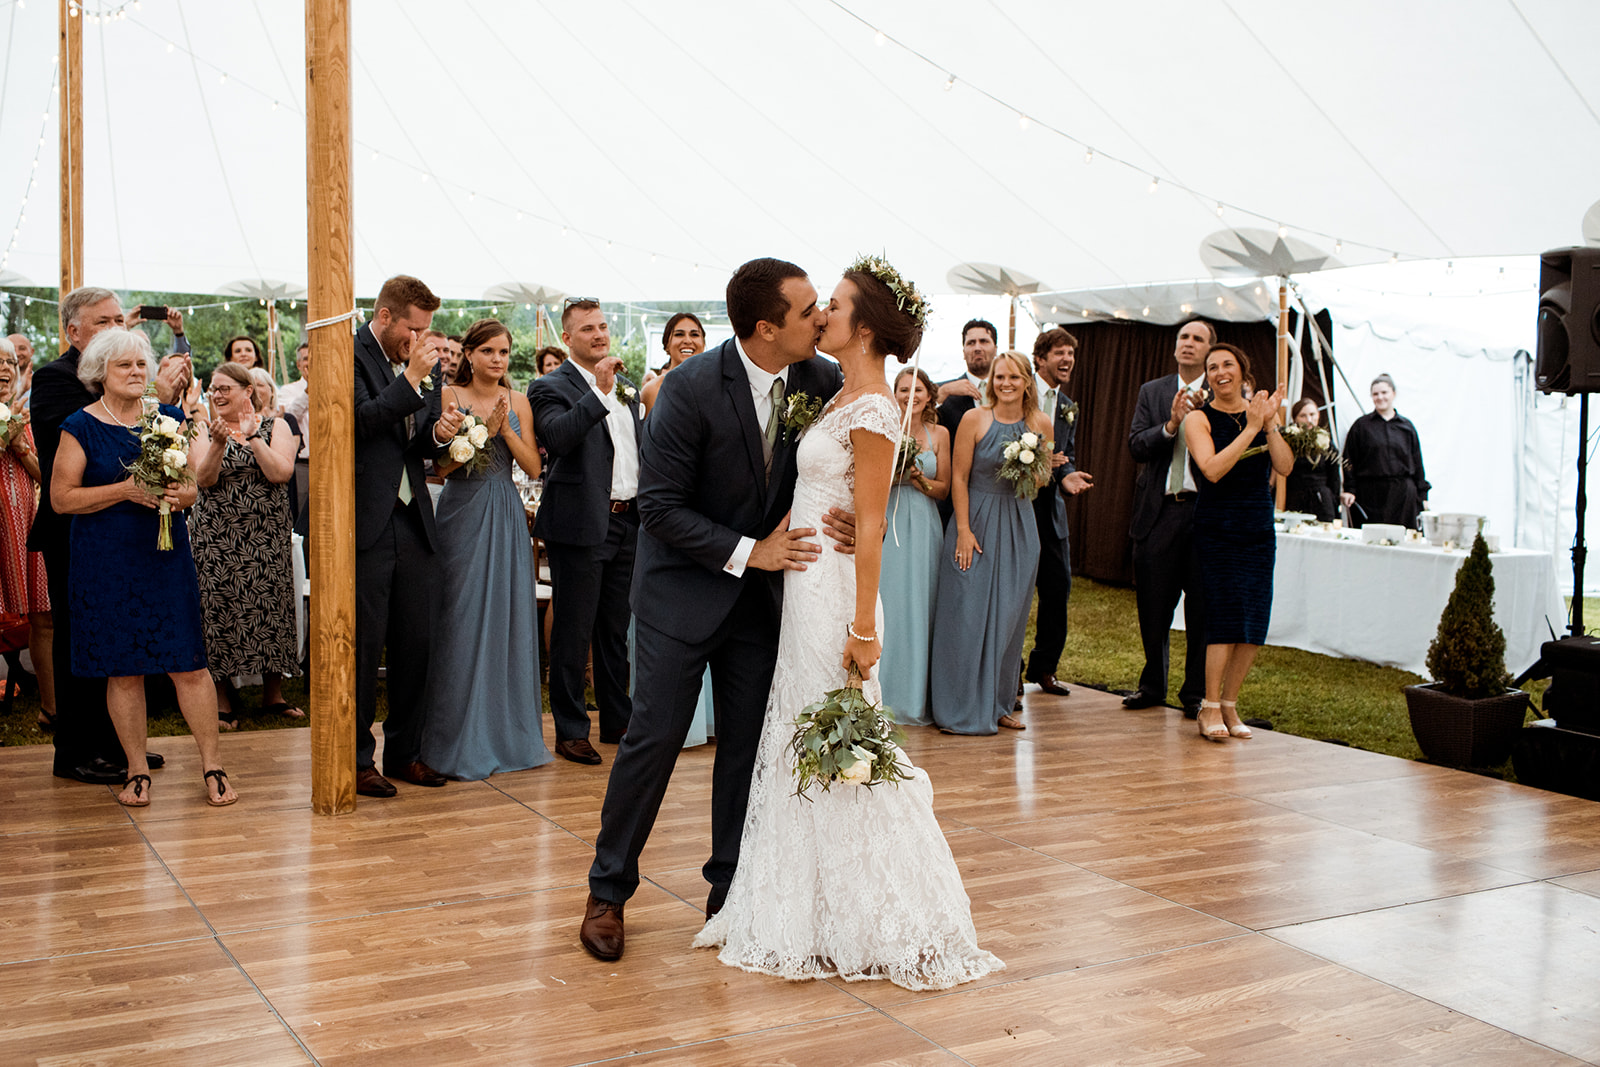 Bride and groom on the dance floor kissing after their bridal entrance! - Pearl Weddings & Events